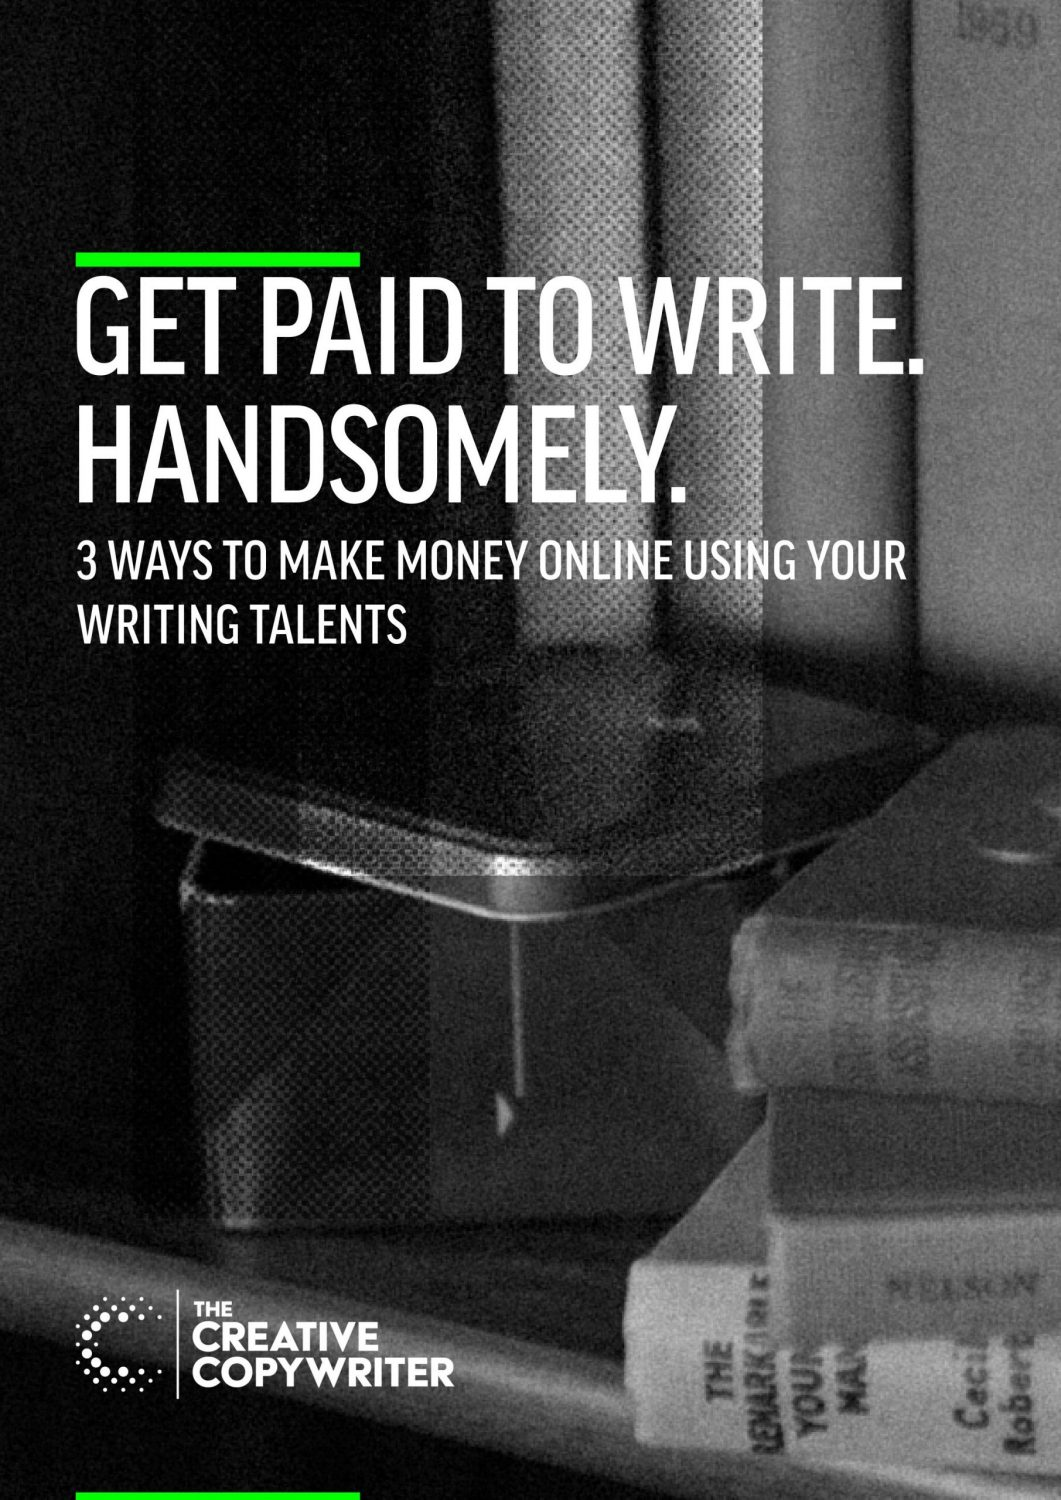 Image for Get Paid to write eBook